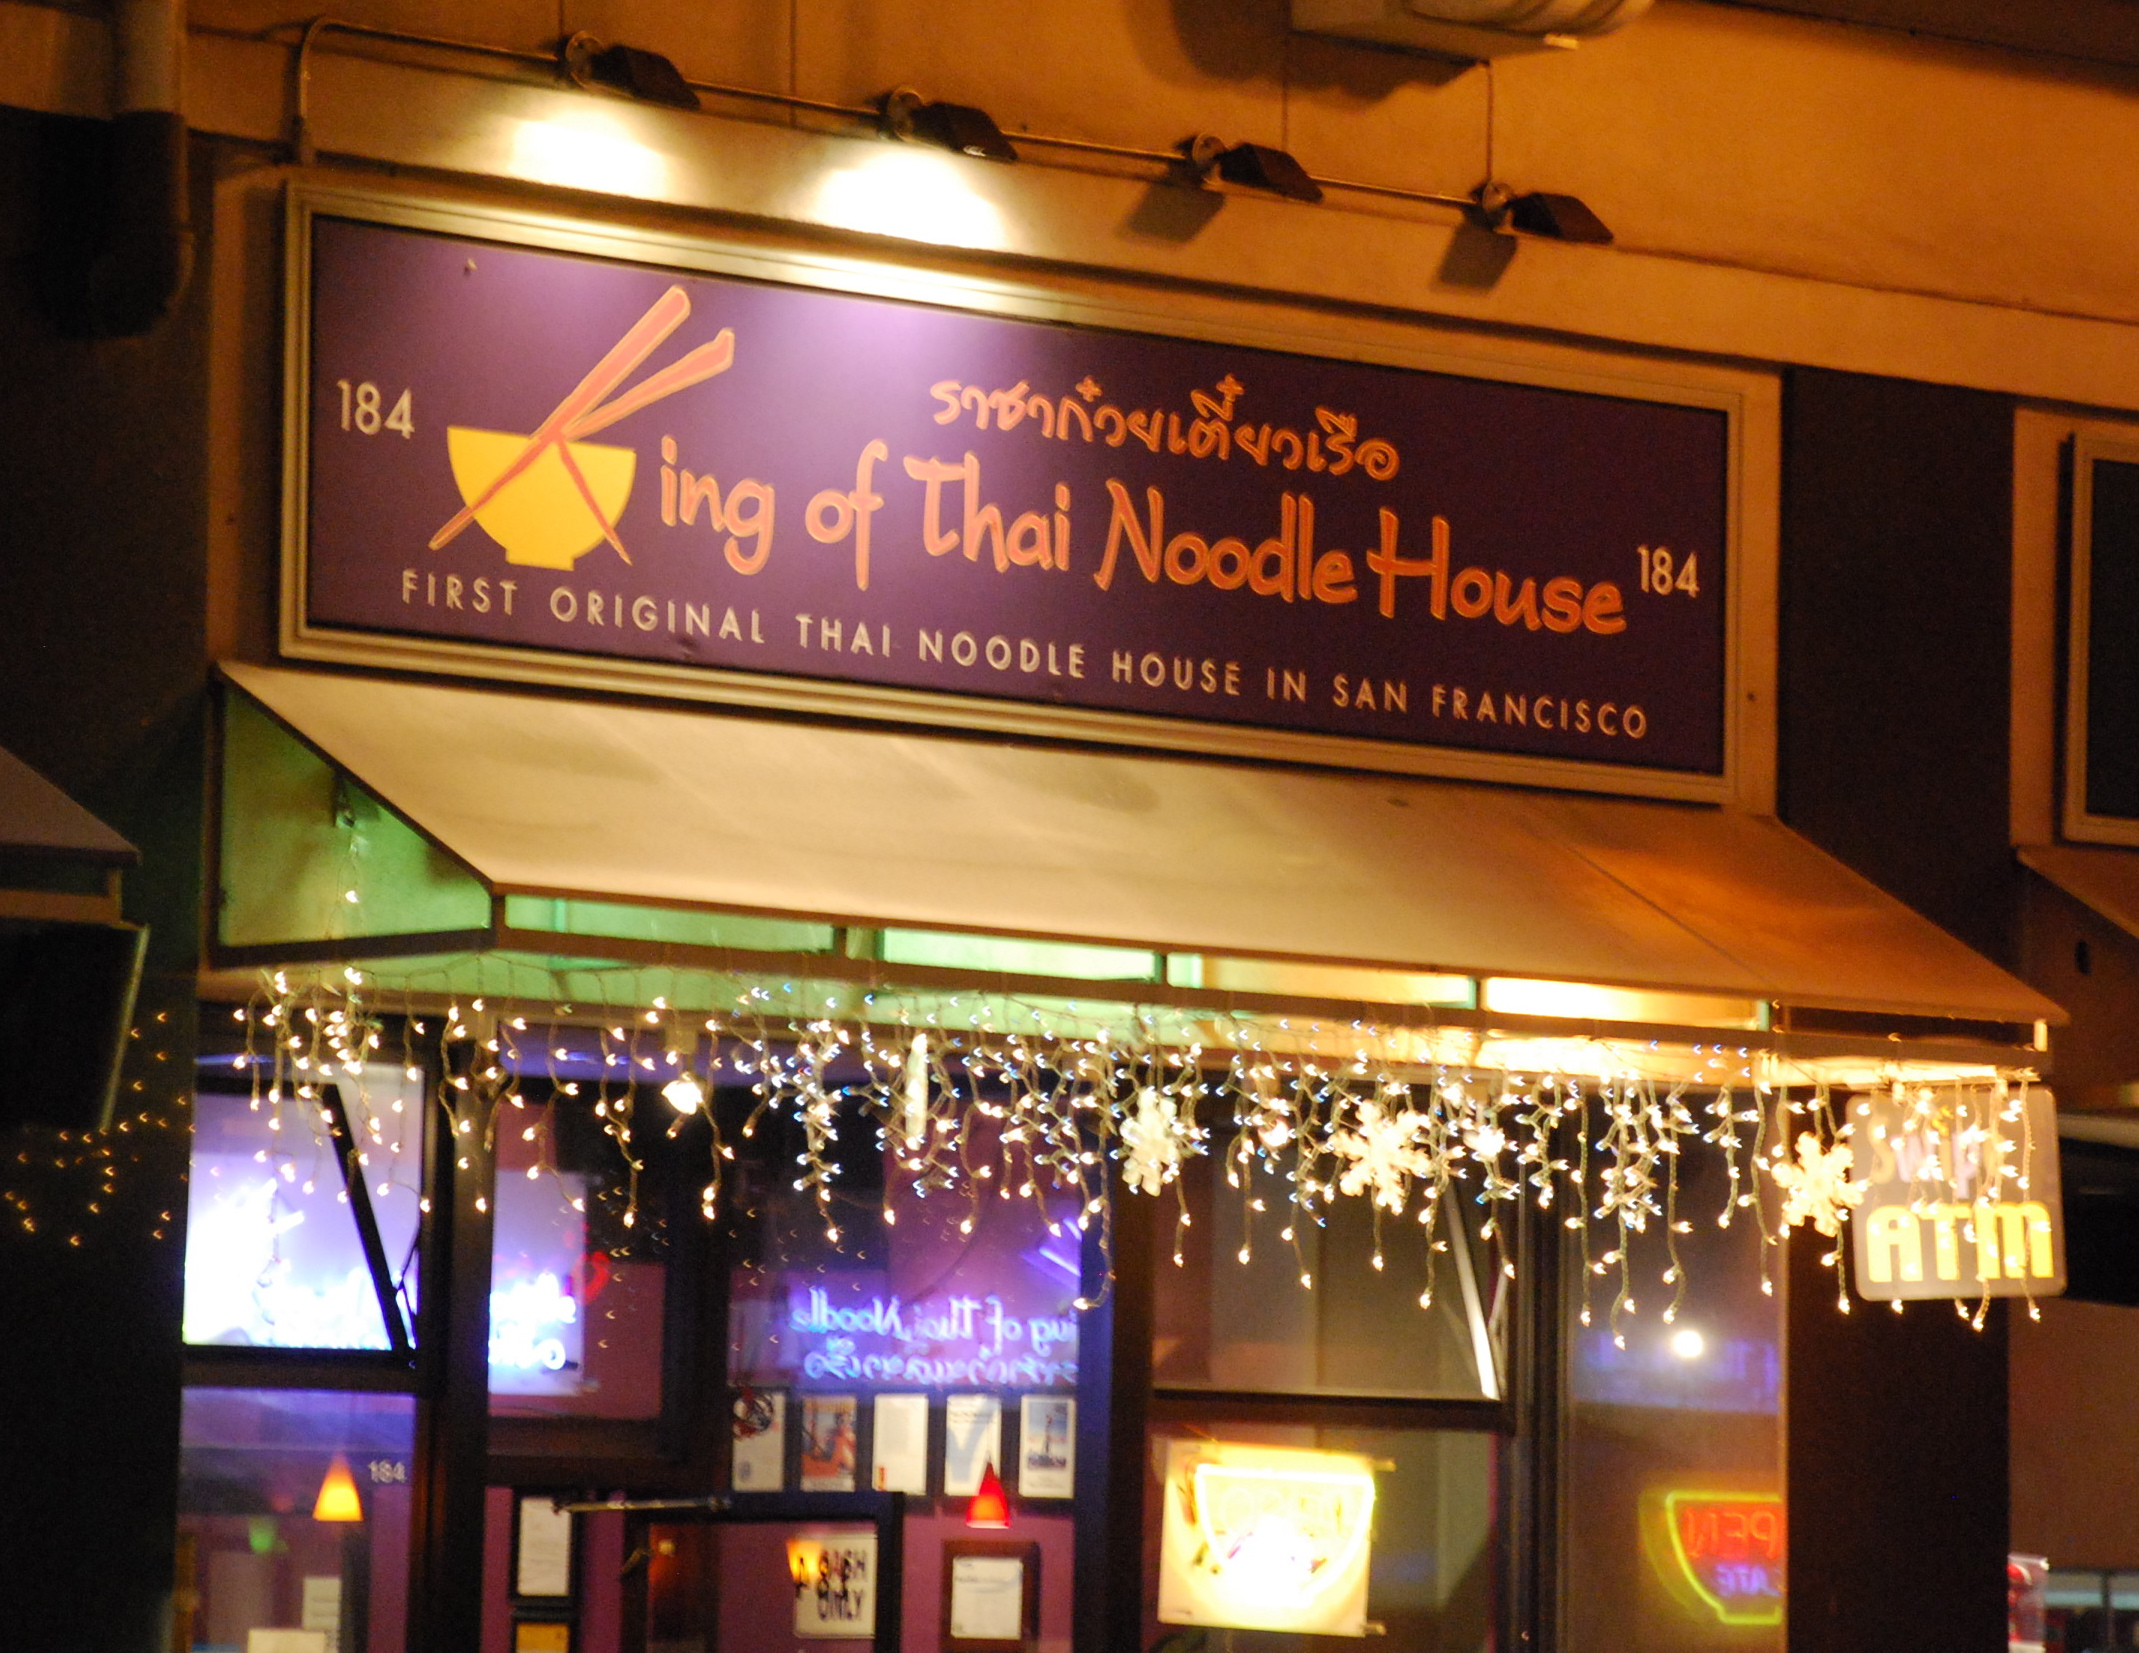 King of thai noodle house san francisco ca 28 images for King s fish house rancho cucamonga